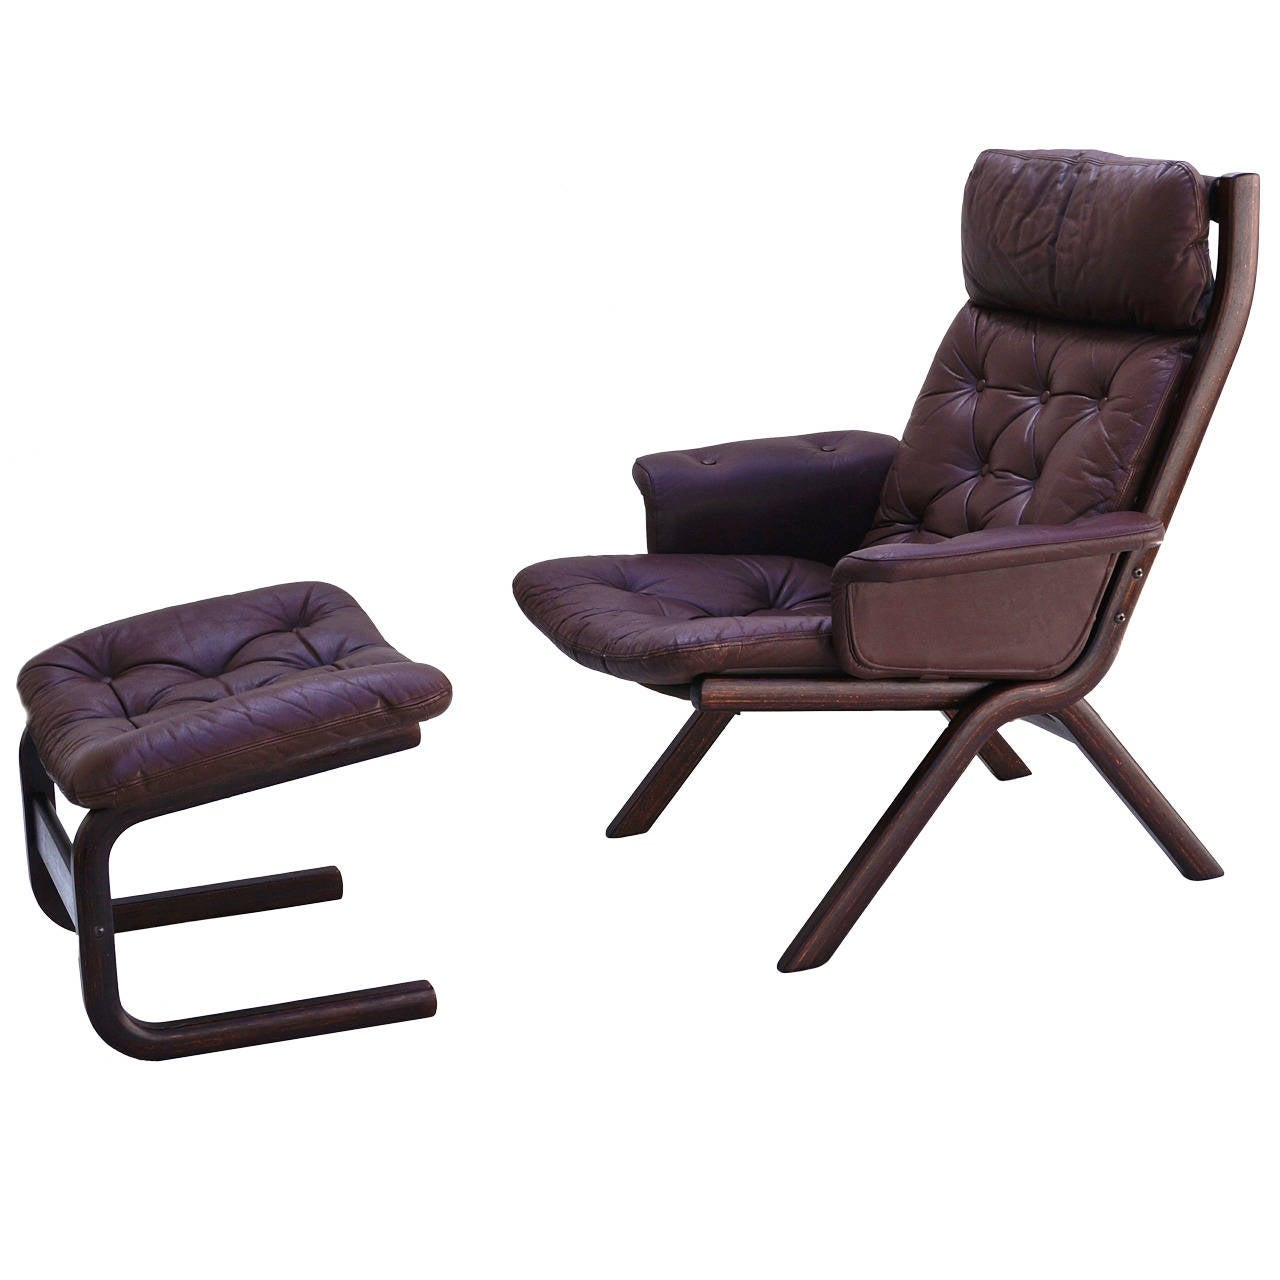 Danish Modern Leather Sculptural Sling Lounge Chair And